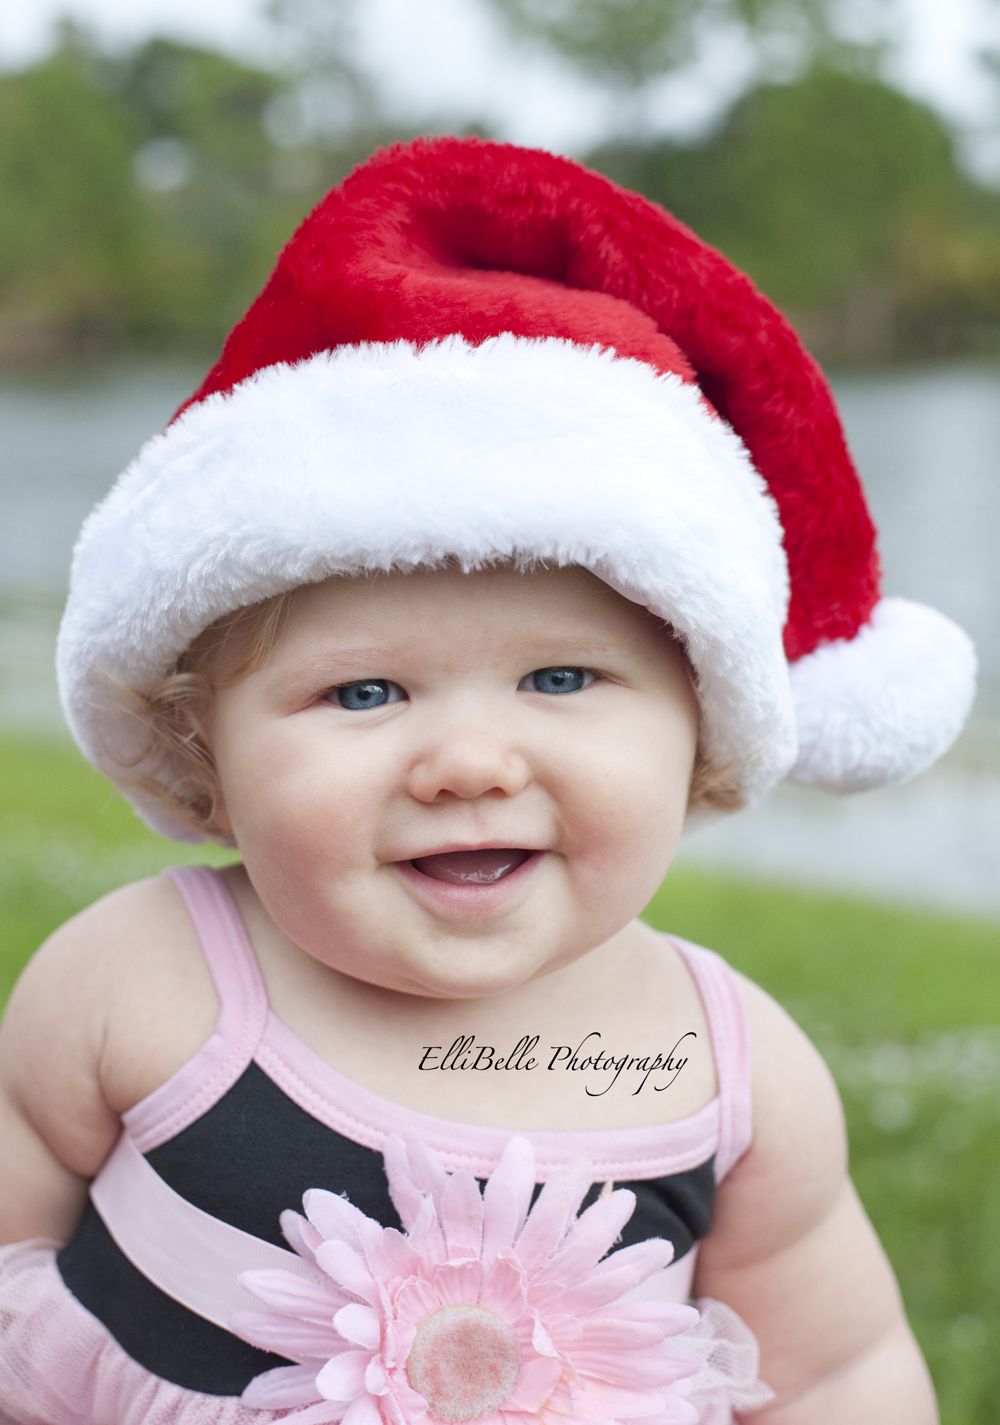 Elli-Belle Photography - Christmas Mini 5